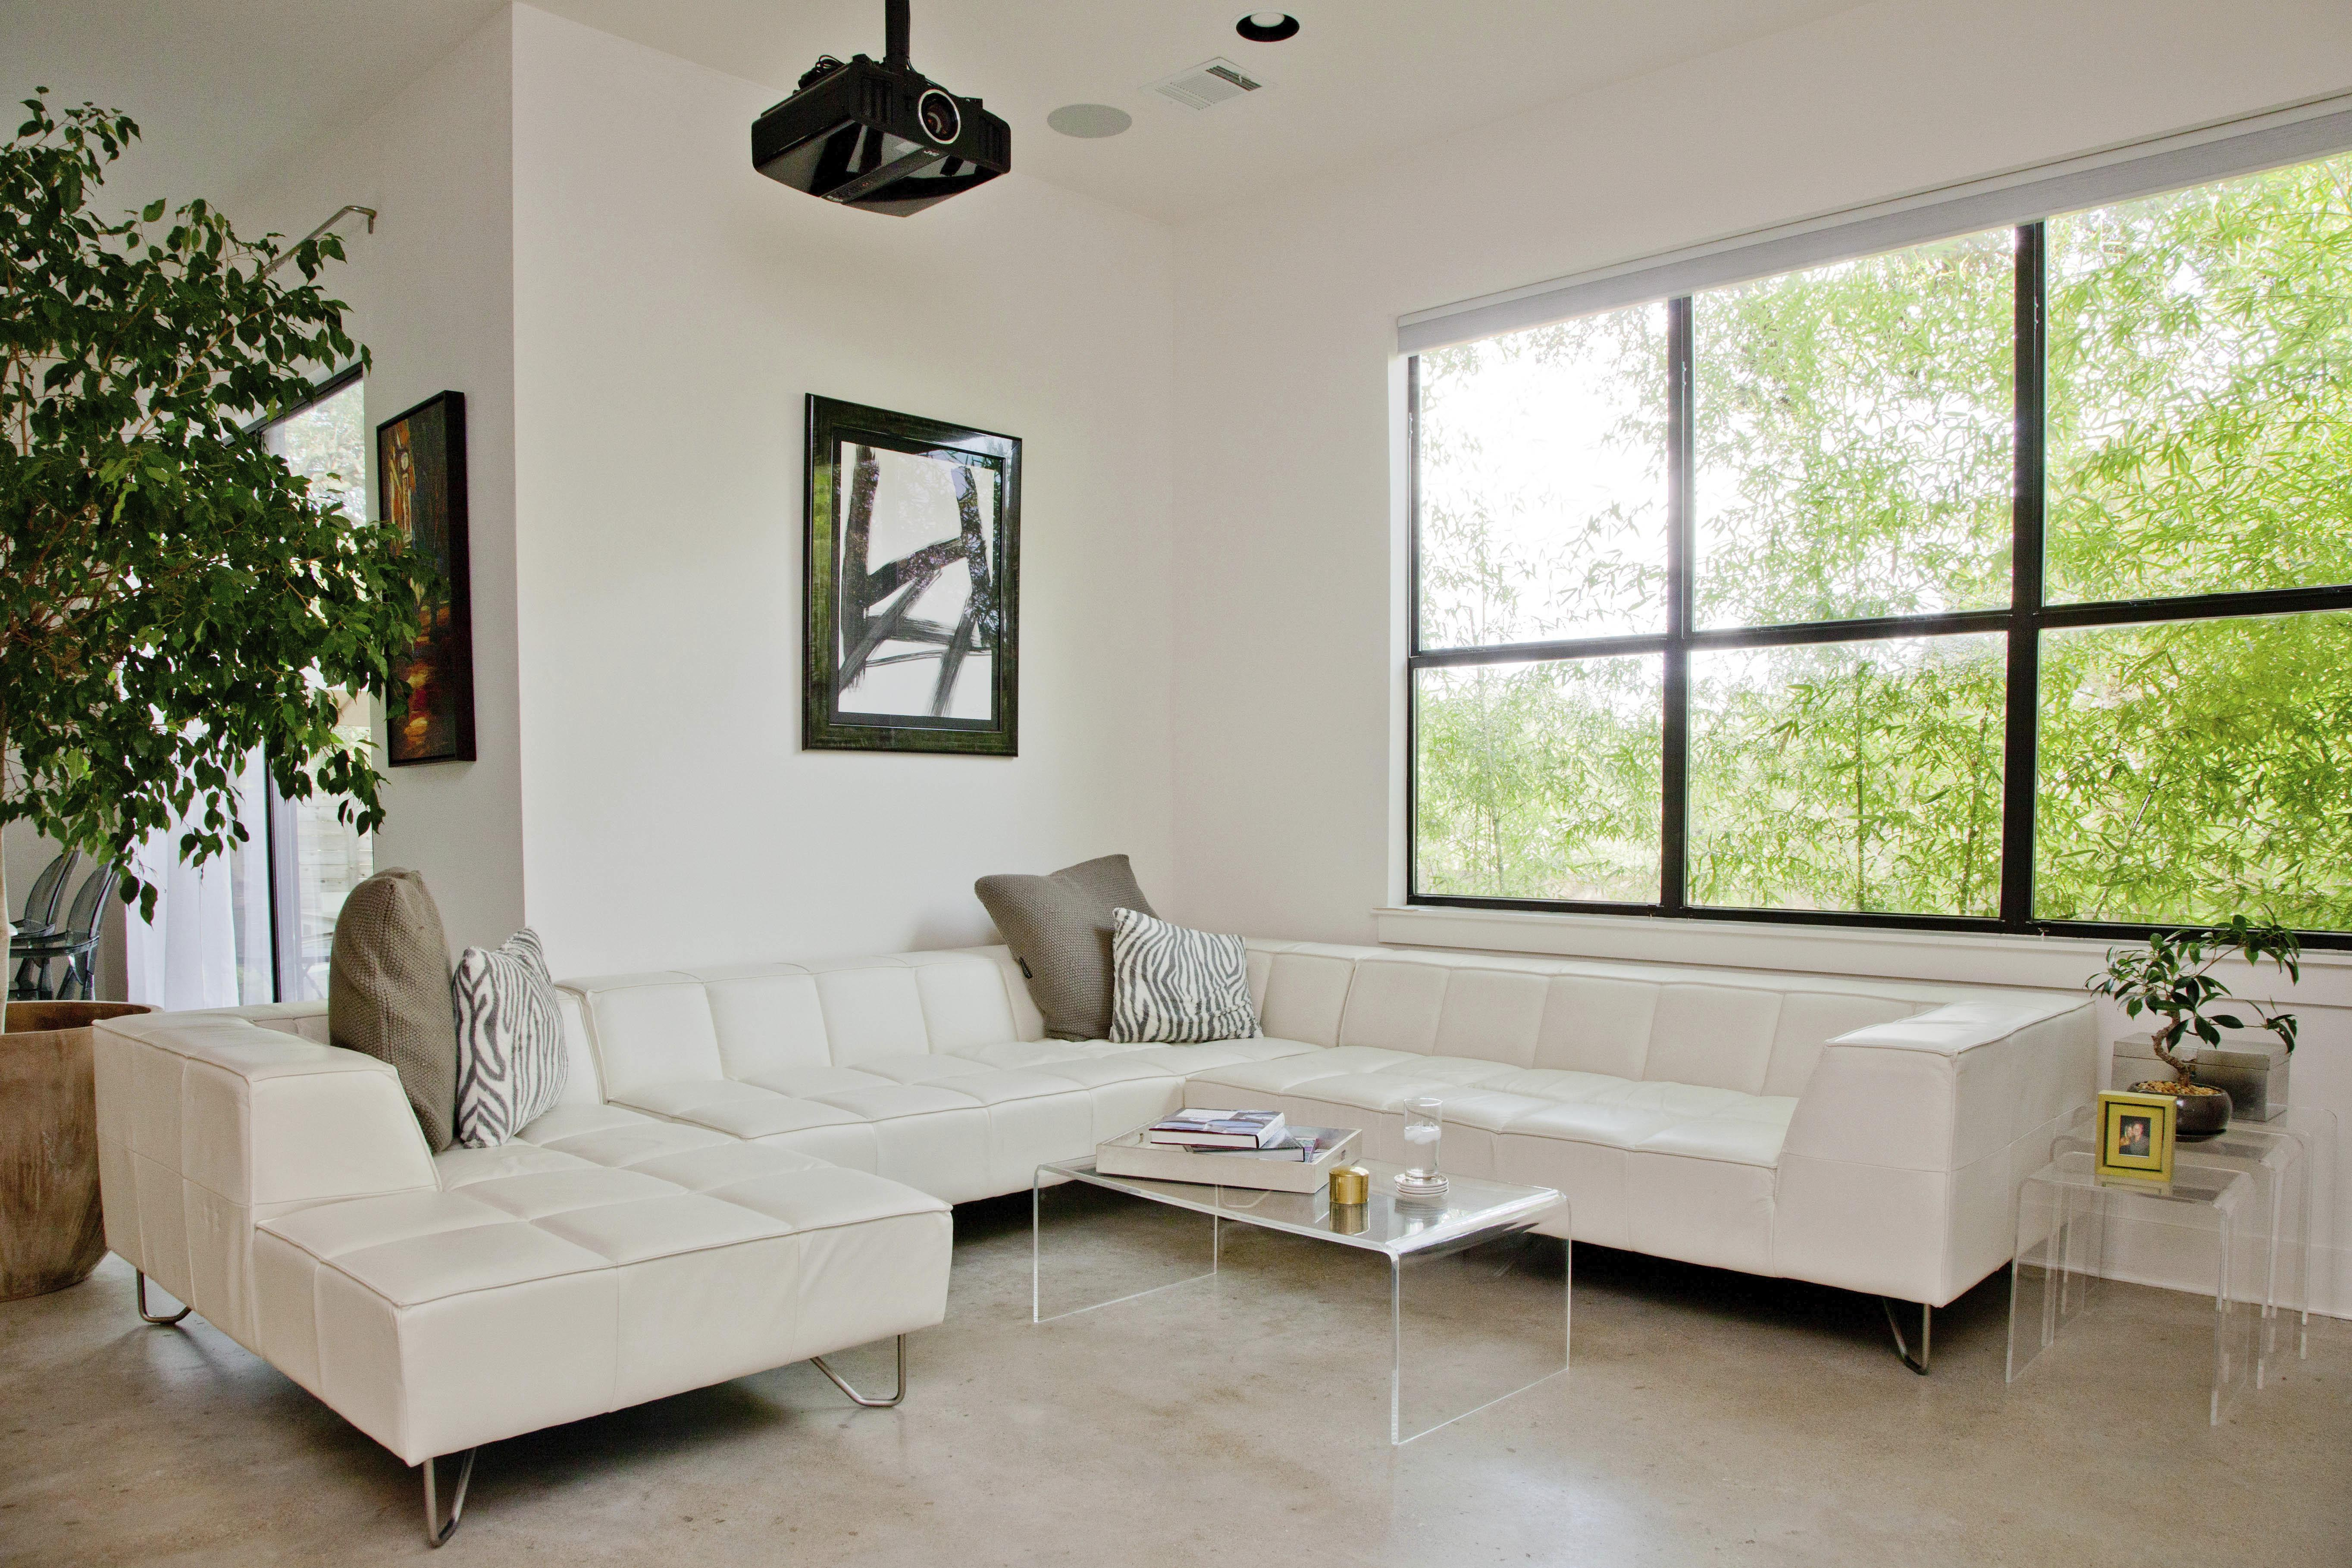 Clear favorite: Acrylics a versatile furniture option | The ...